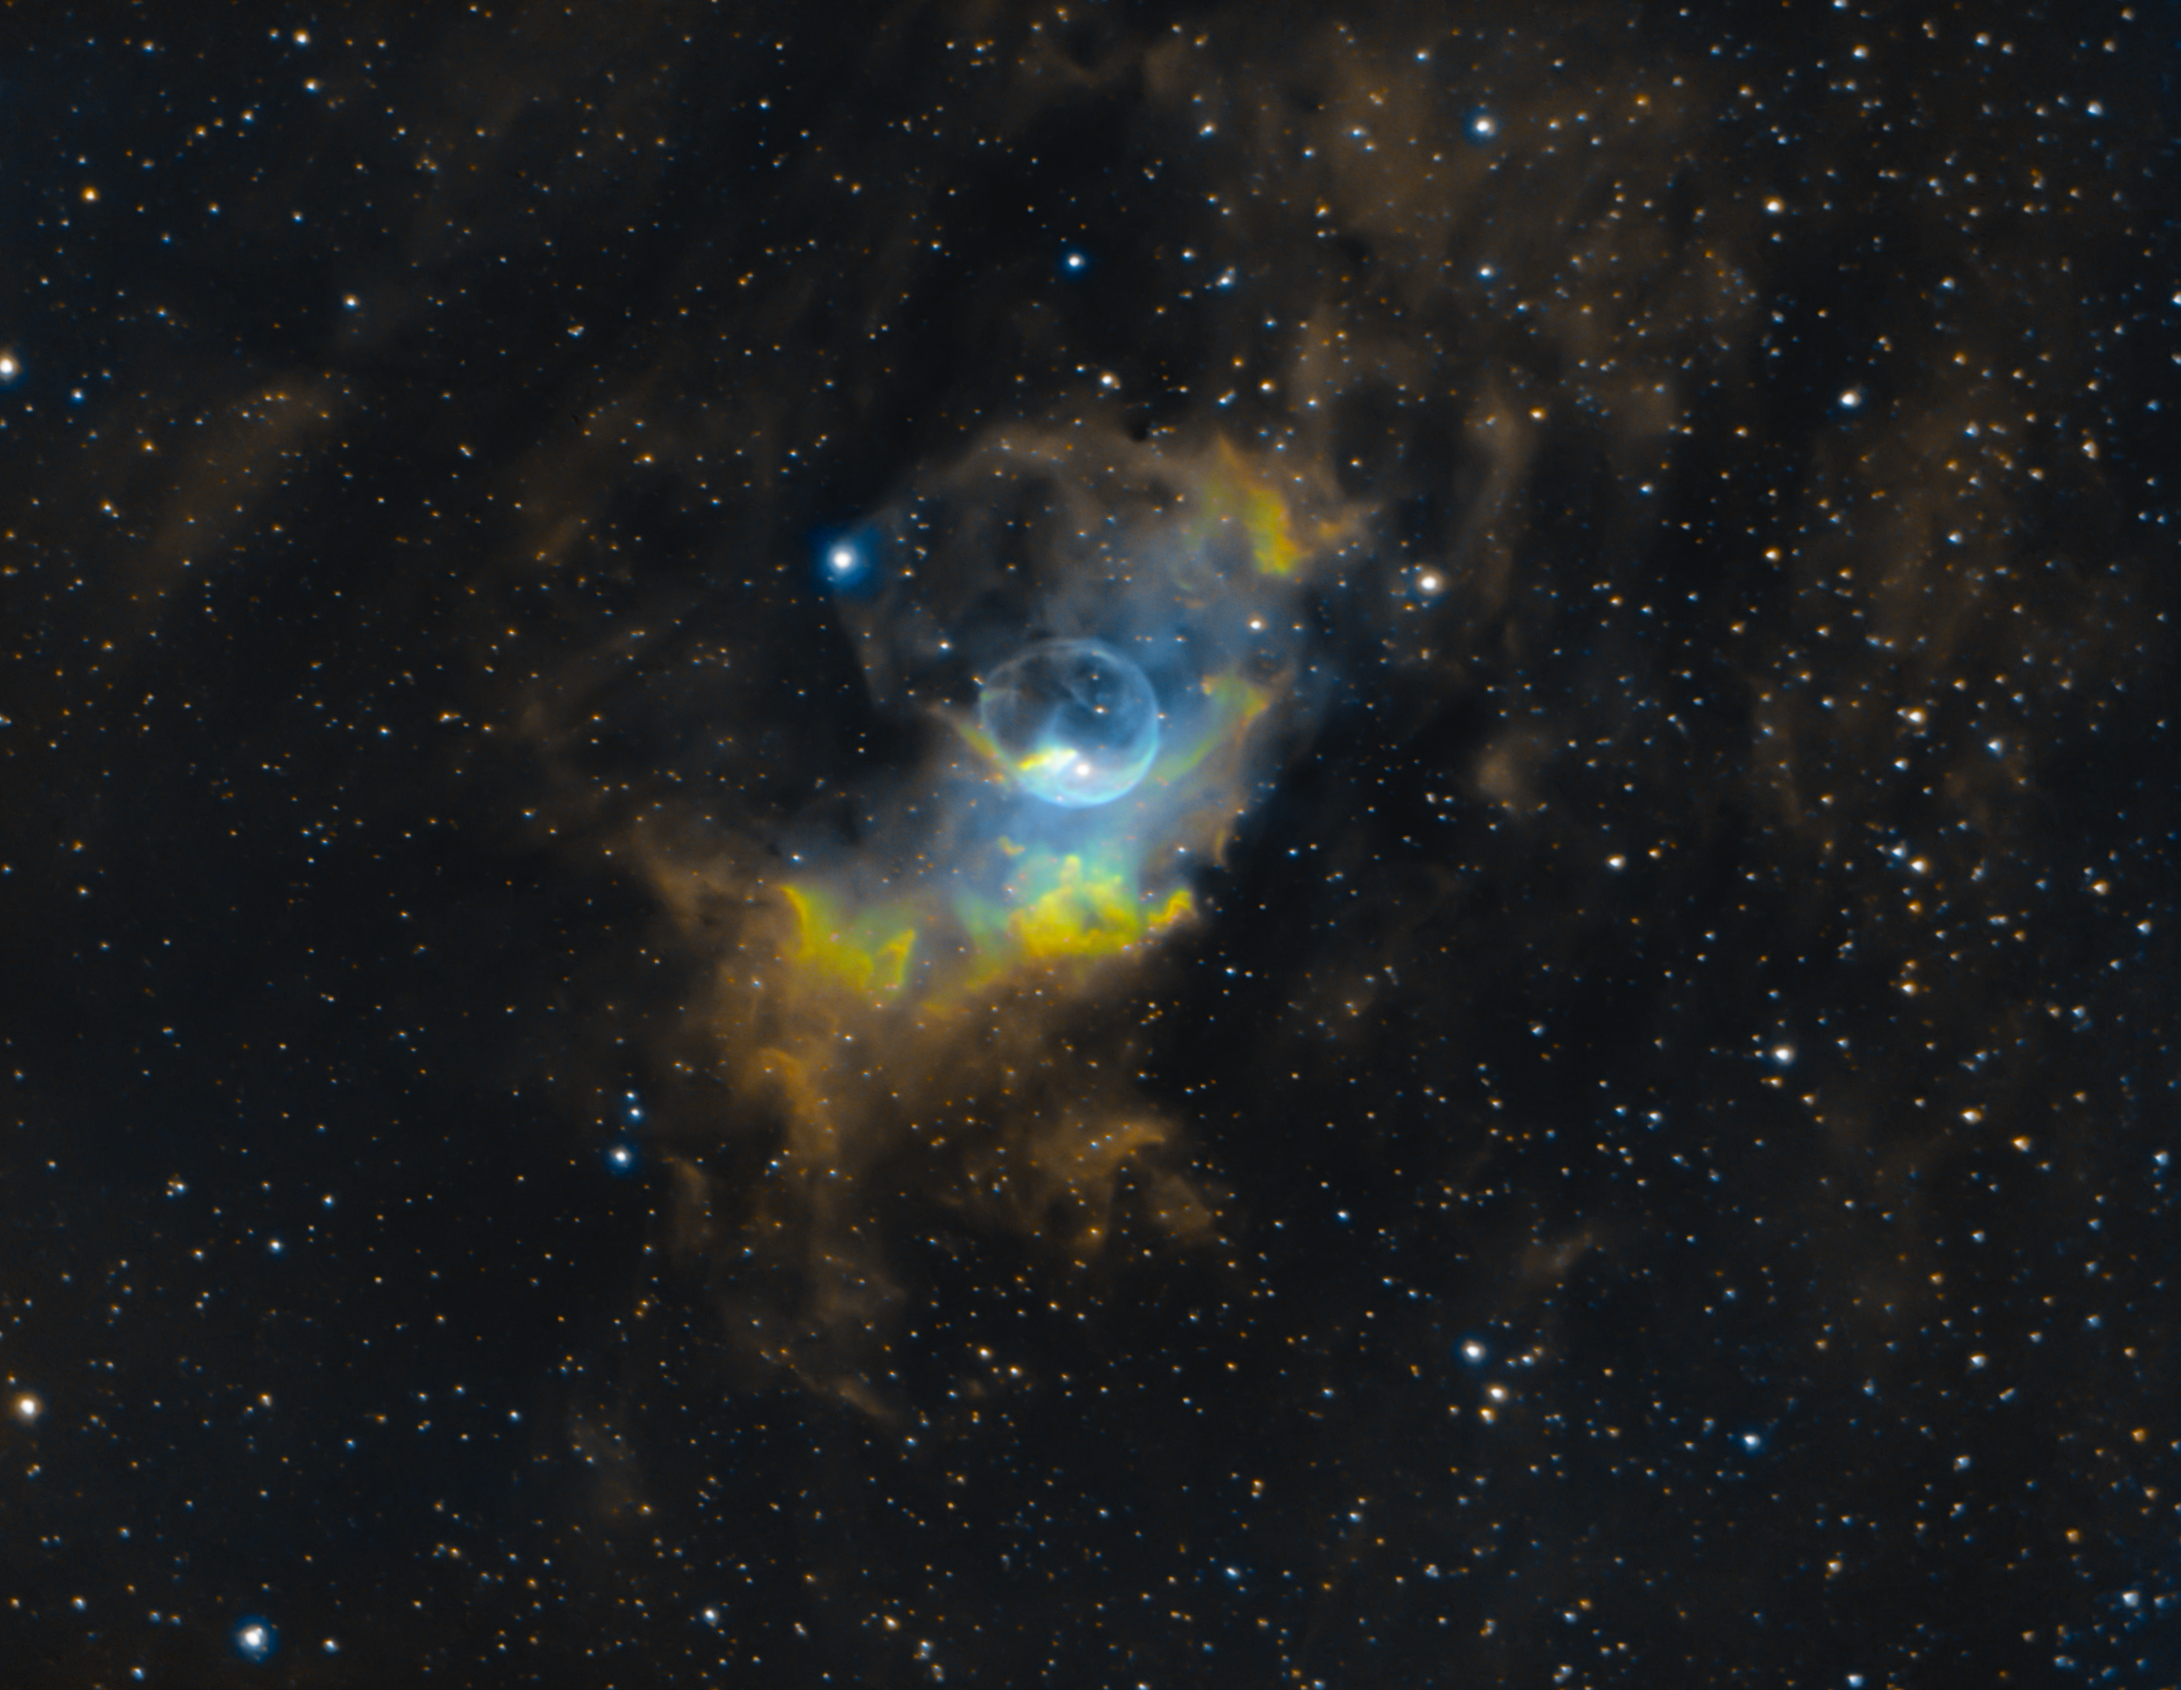 NGC7635_200724_Paris_Laurent_Perrin.jpg